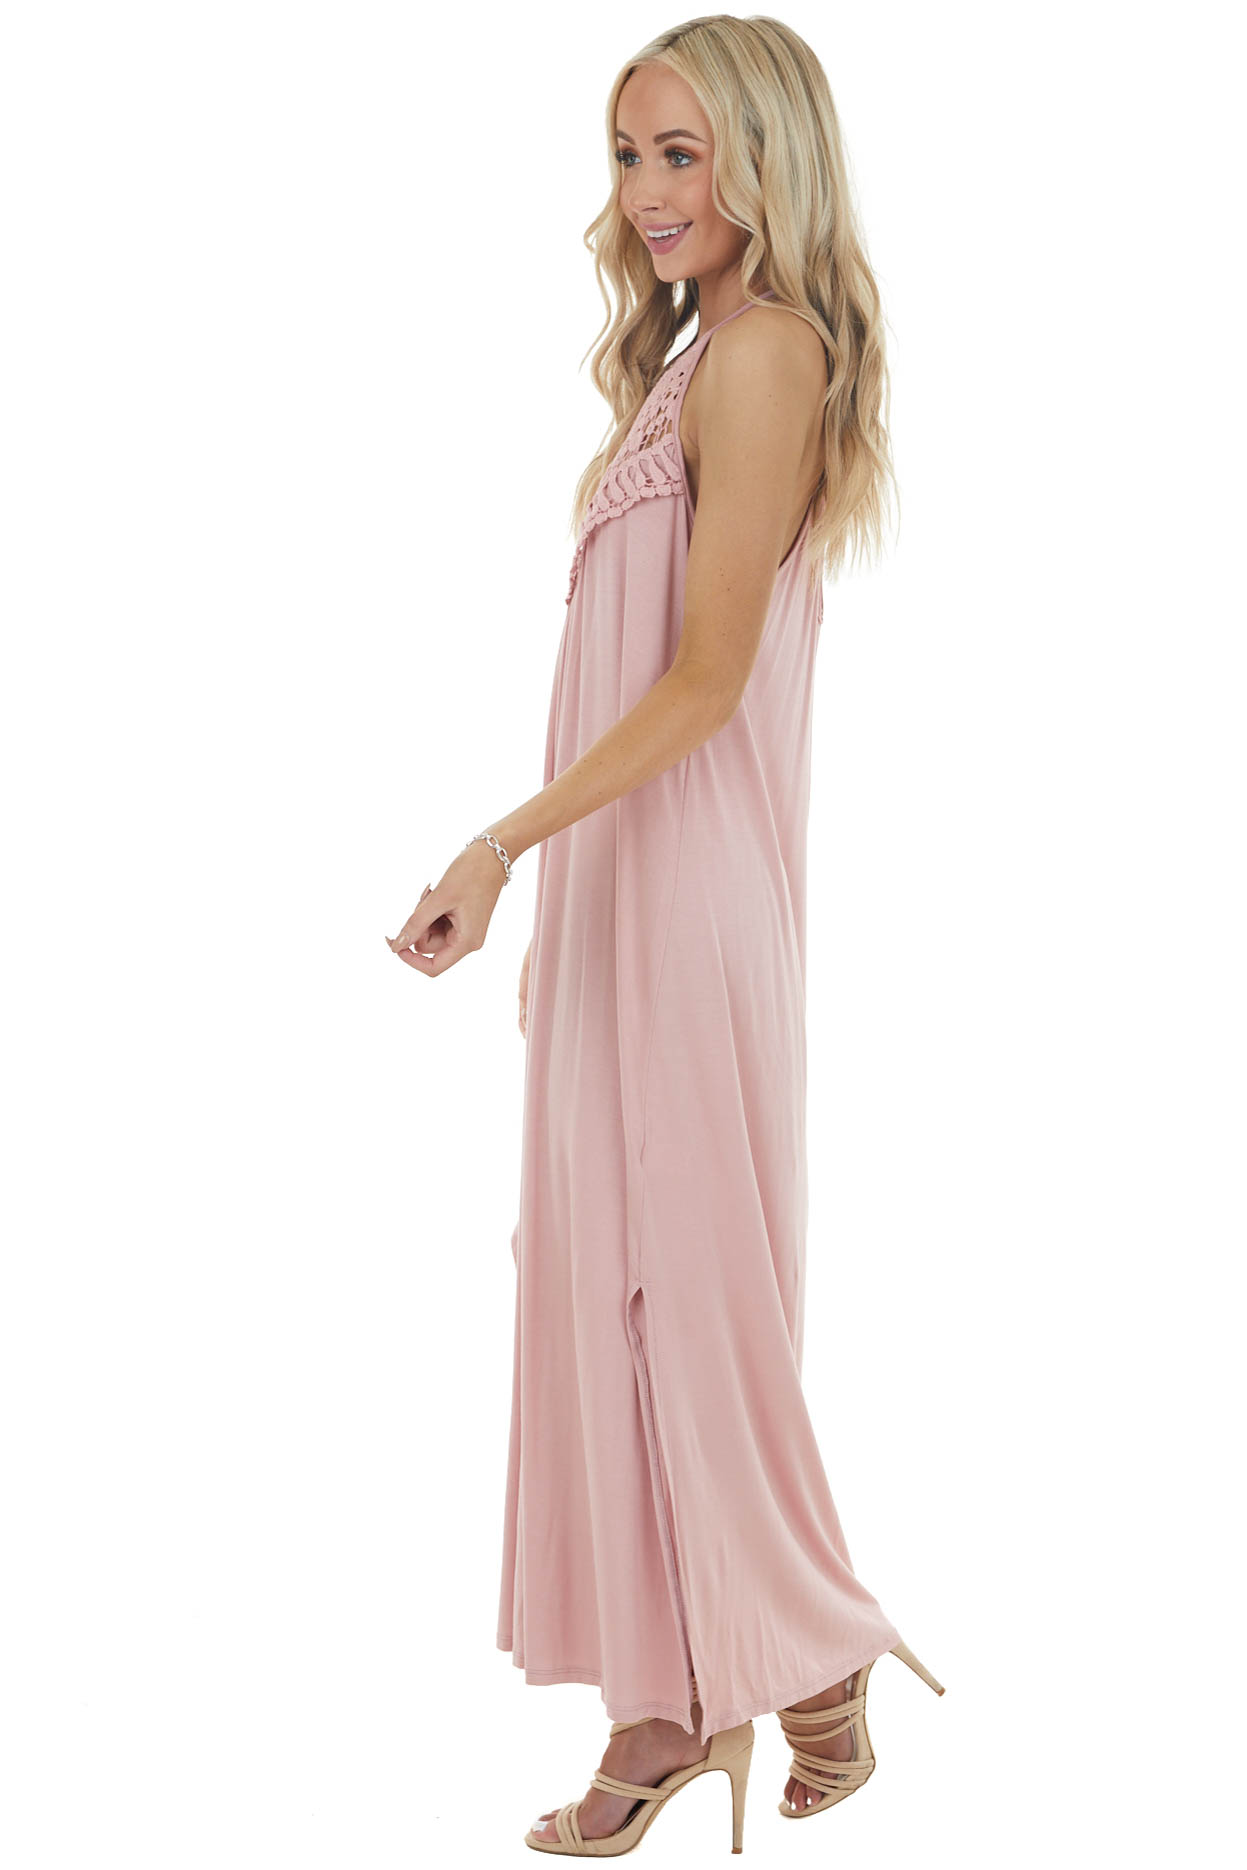 Carnation Pink Spaghetti Strap Maxi Dress with Lace Detail